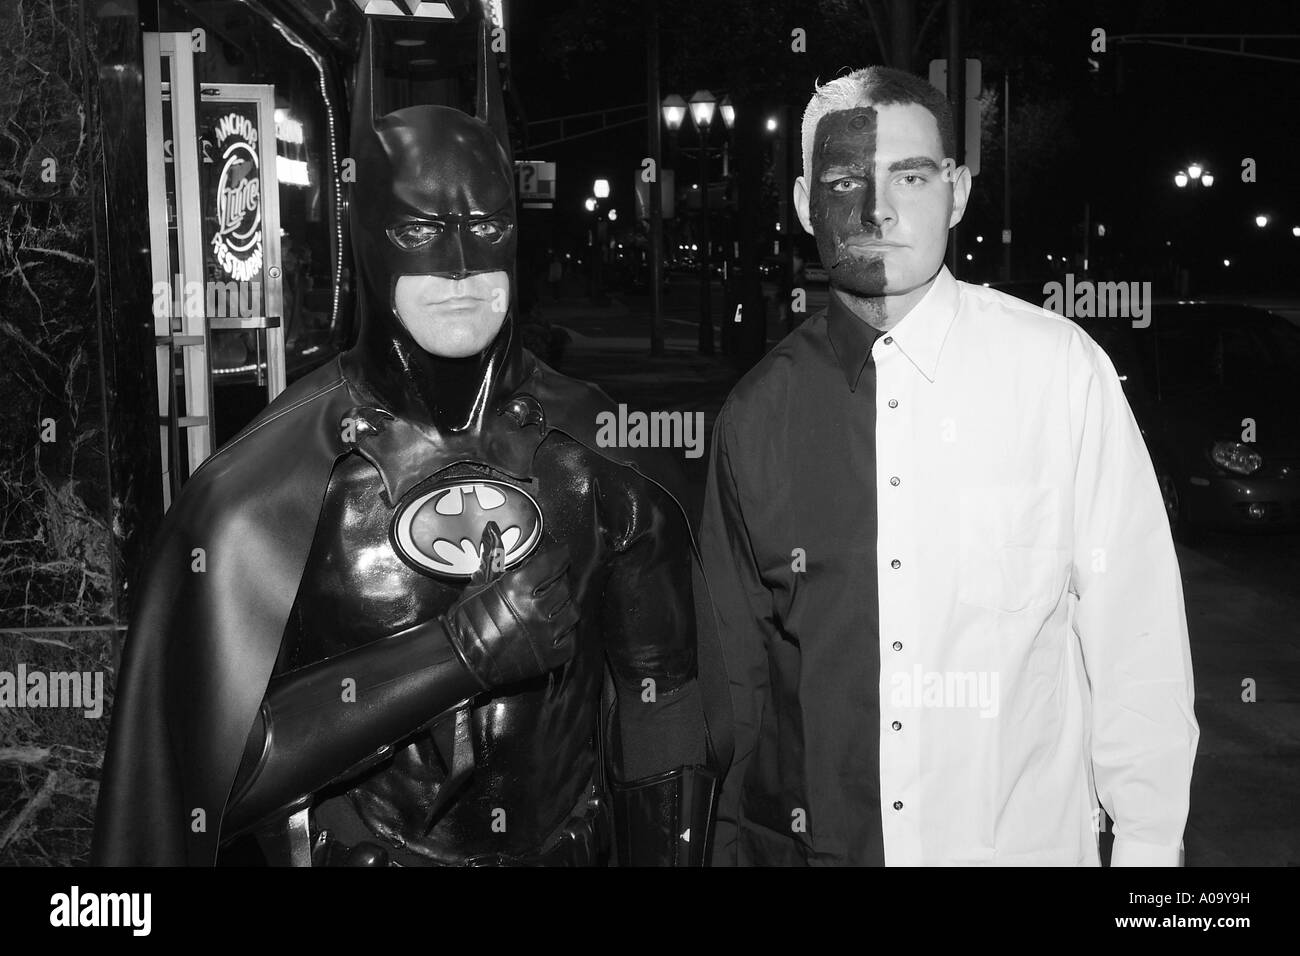 Adults dressed in costume for Halloween black and white documentary style street photography - Stock Image & Batman Costume Black and White Stock Photos u0026 Images - Alamy